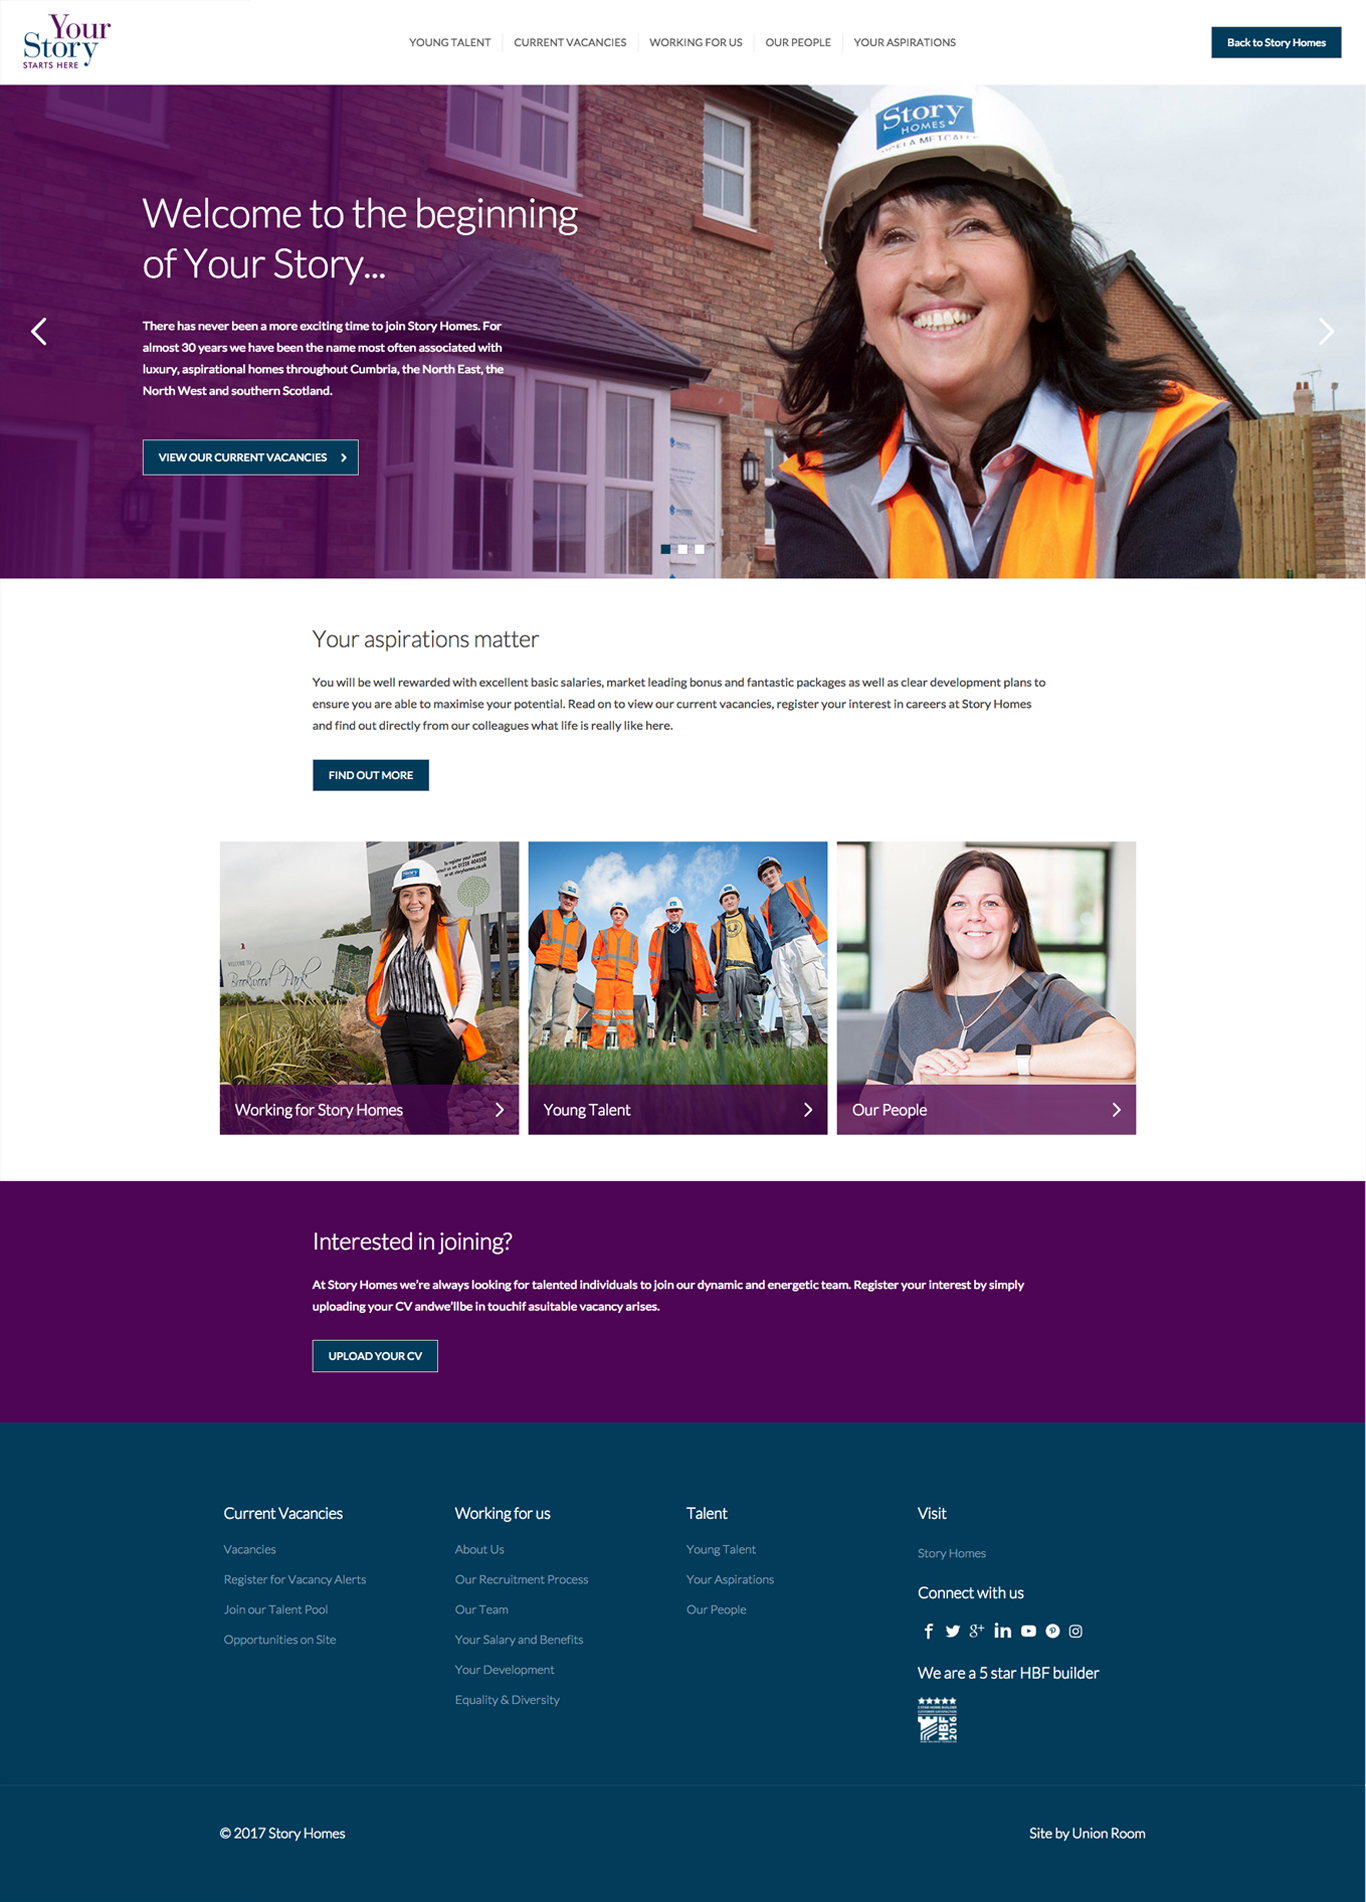 Story Homes Careers